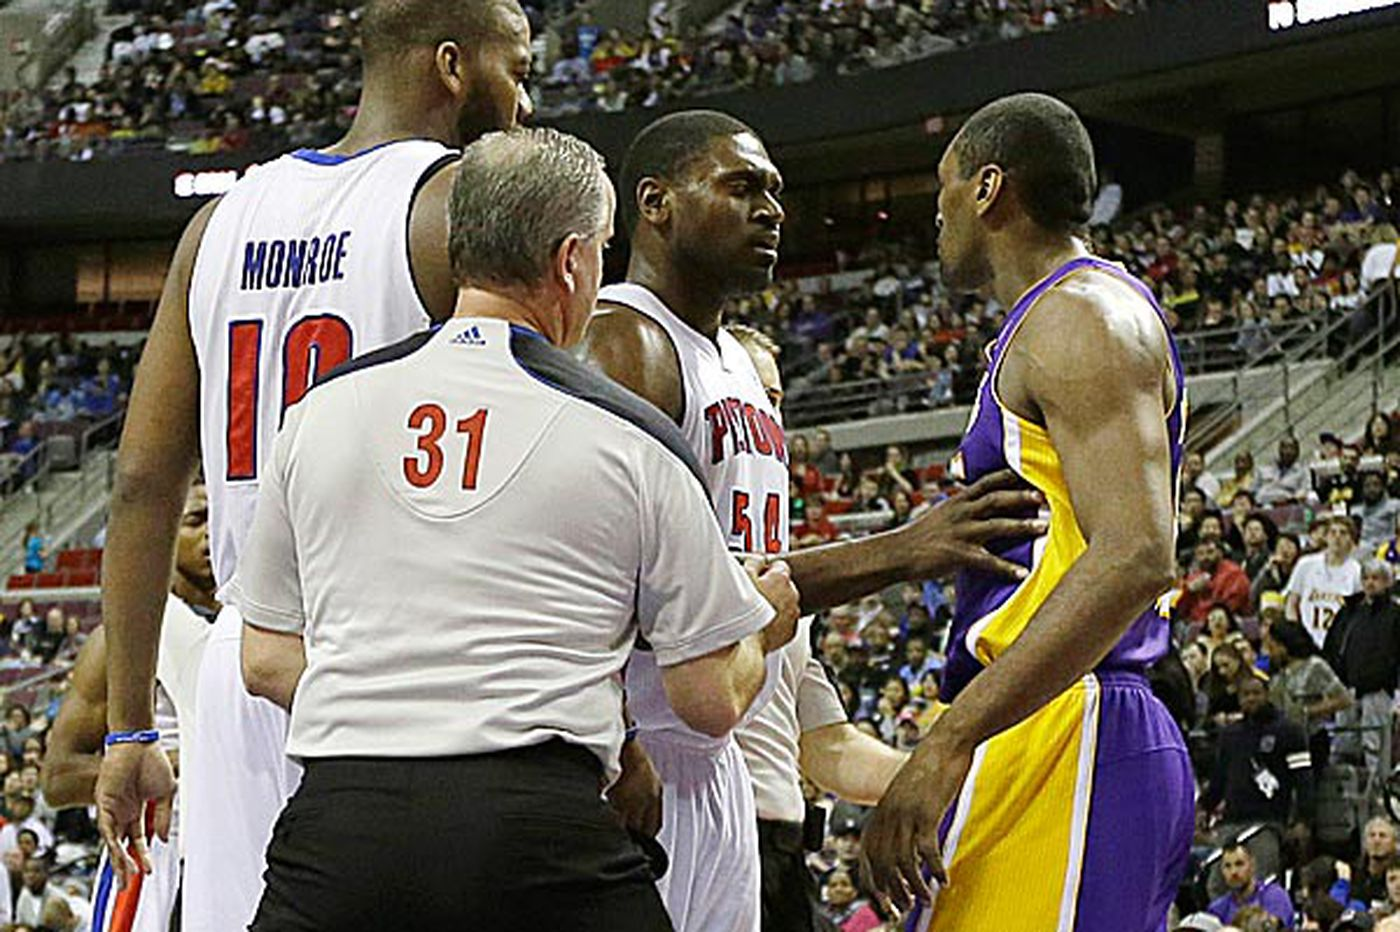 Lakers' Metta World Peace not living up to name